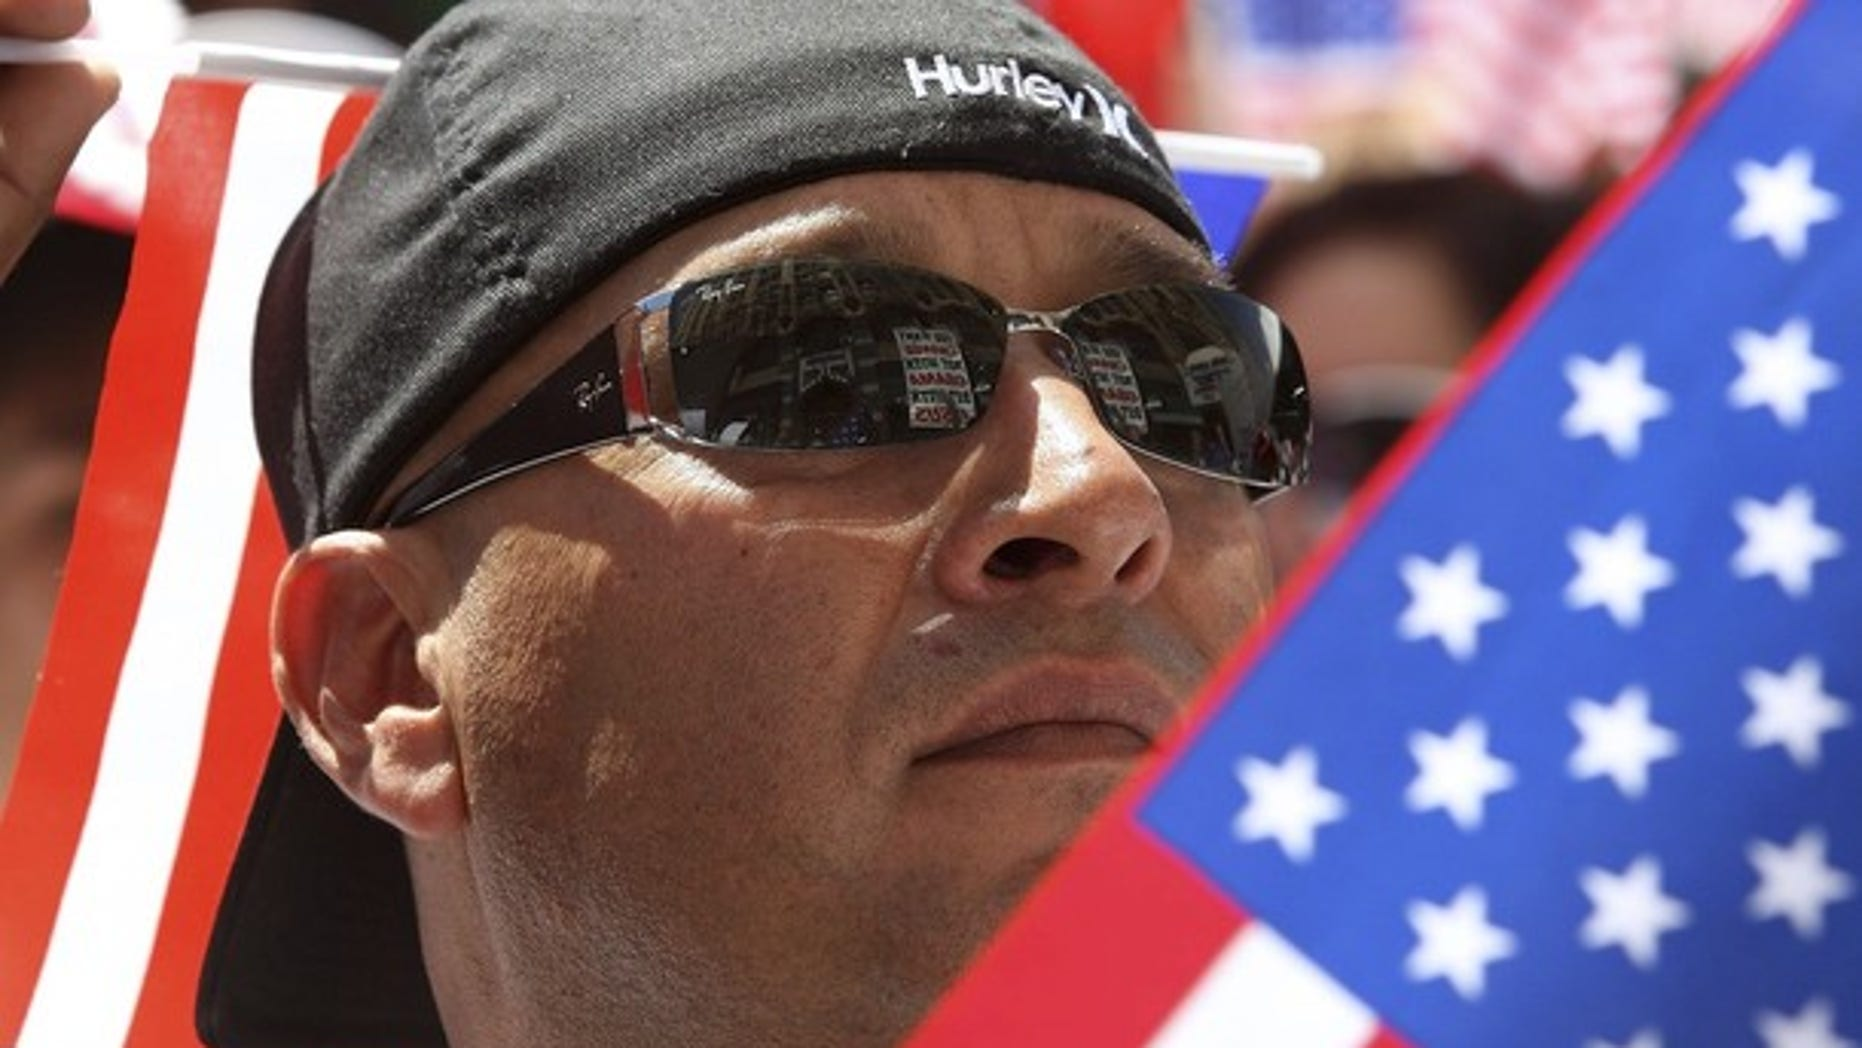 A man carrying U.S. flags joins thousands of protesters in a march up Broadway during a May Day immigration rally in Los Angeles, California, May 1, 2010. (Reuters)